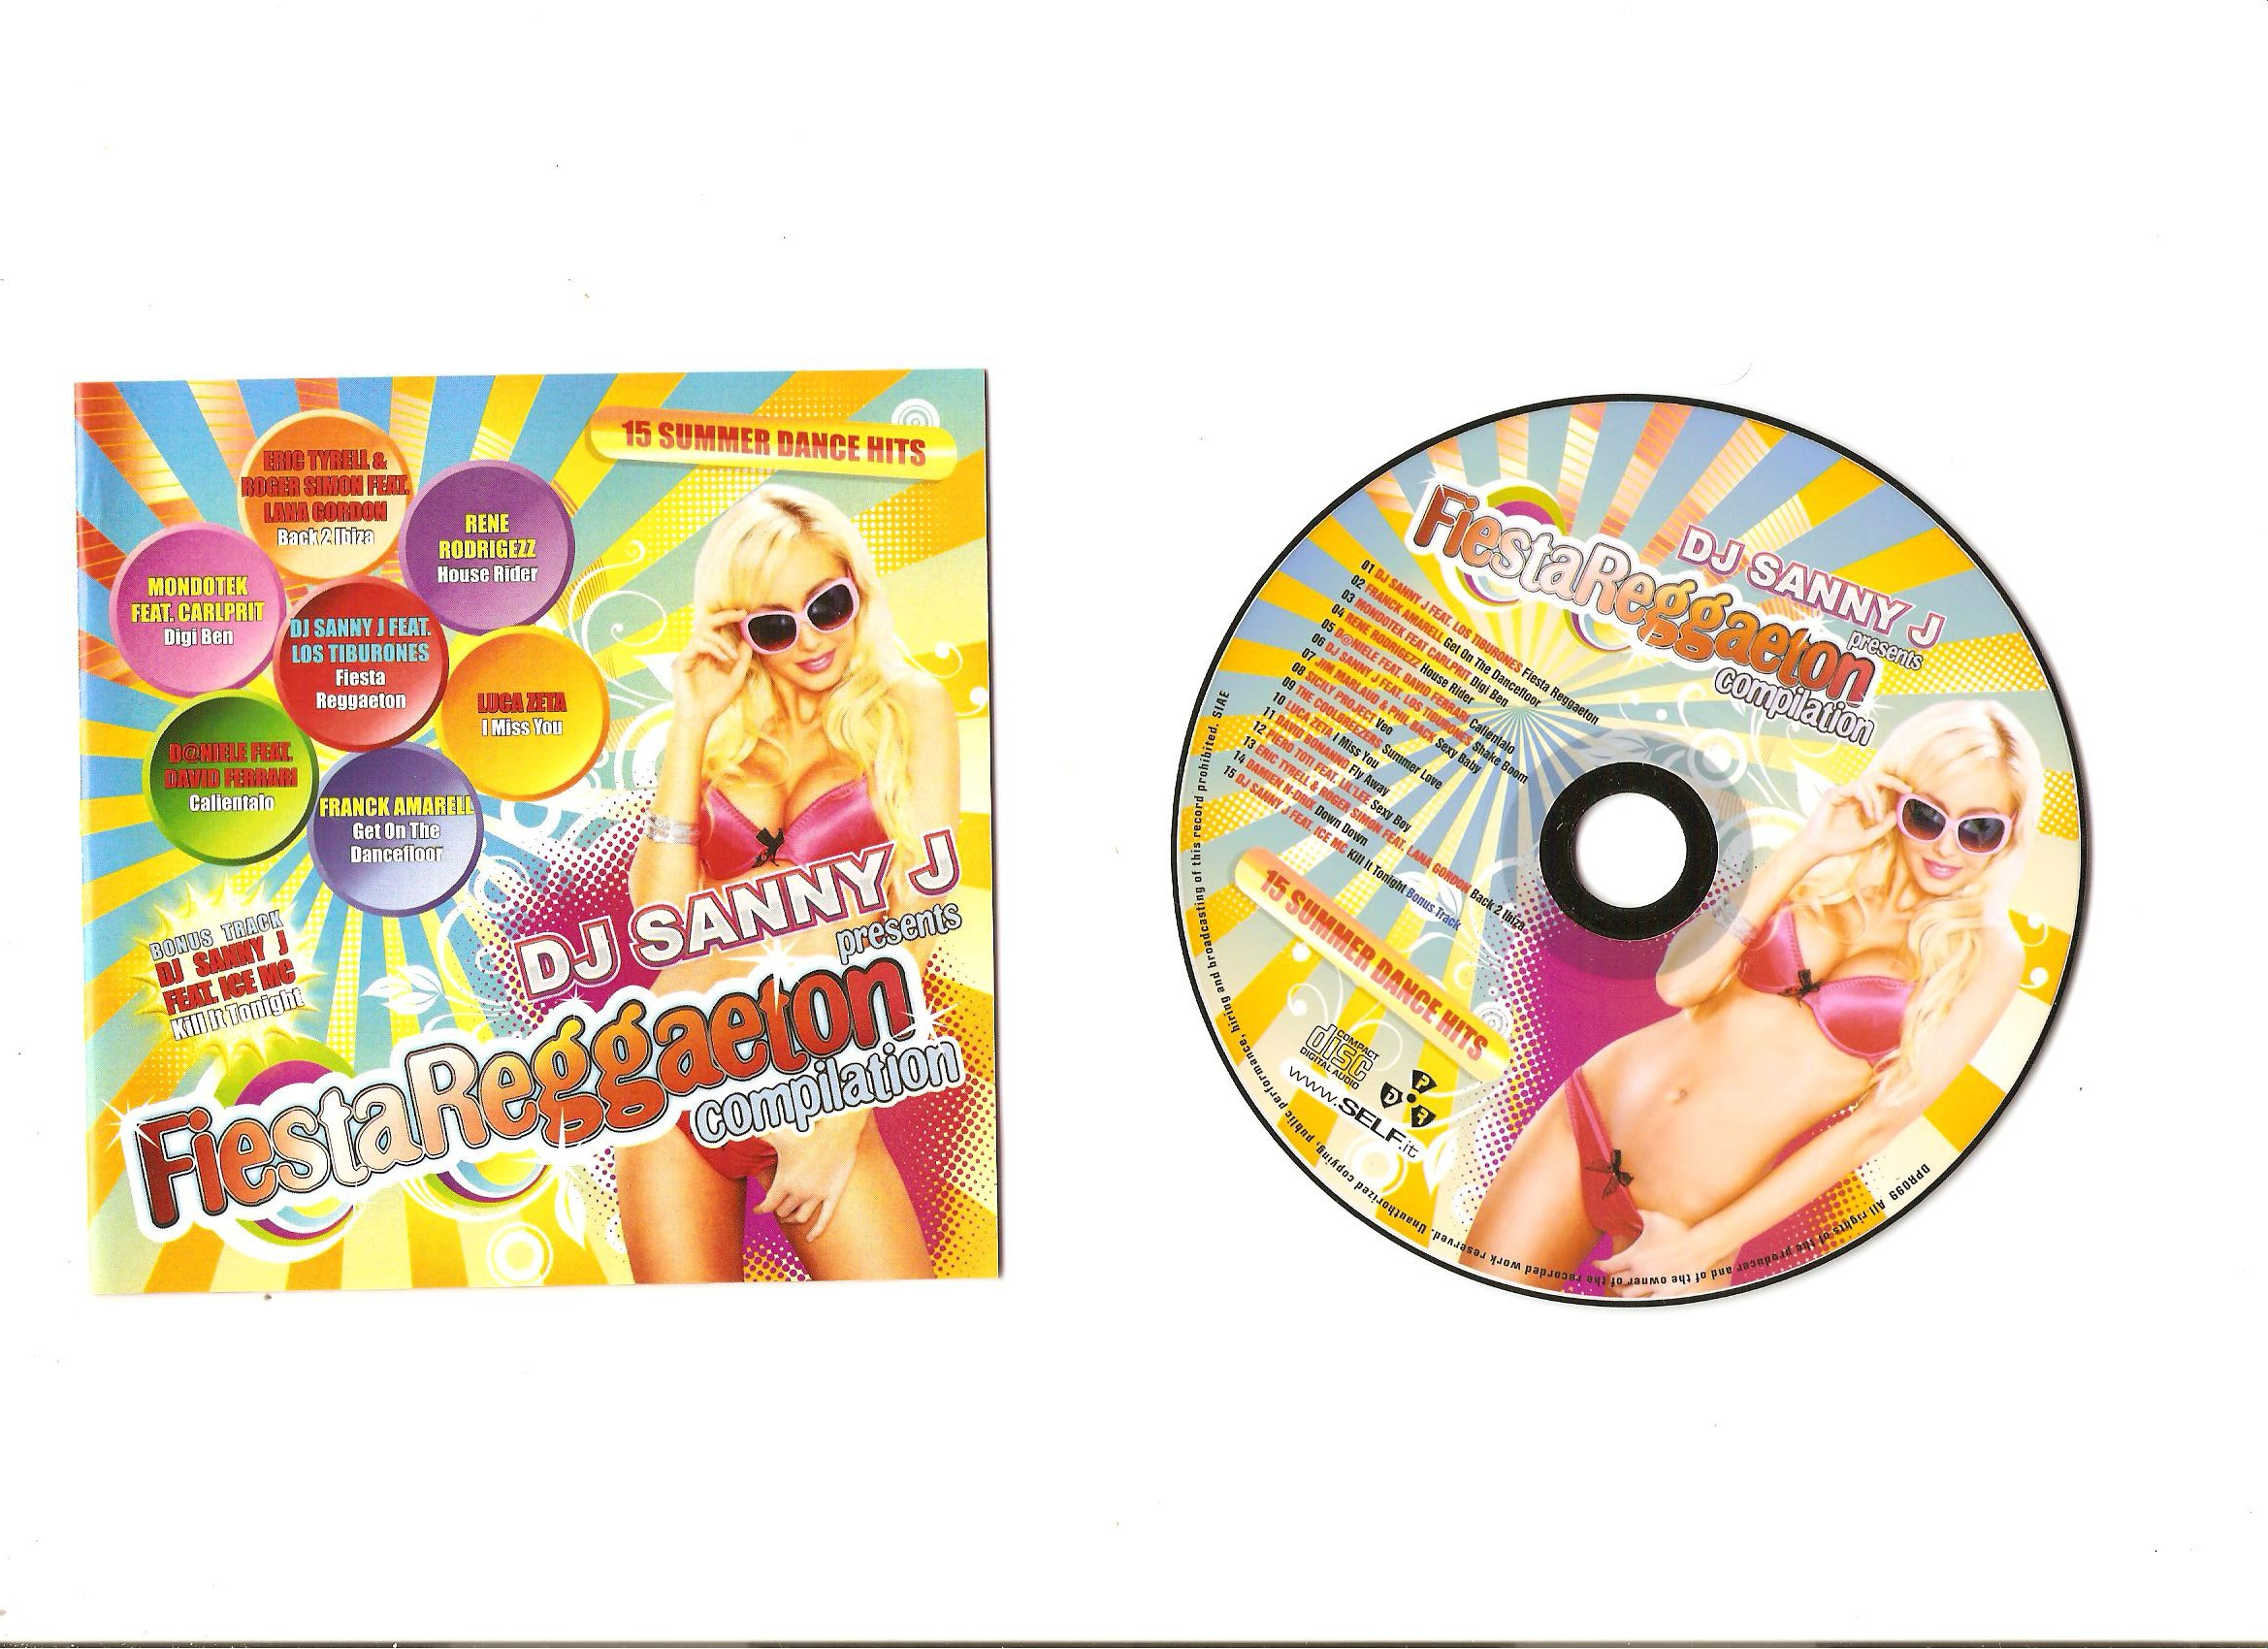 VA - Fiesta reggaeton Compilation 2011 (CD ORIGINAL)